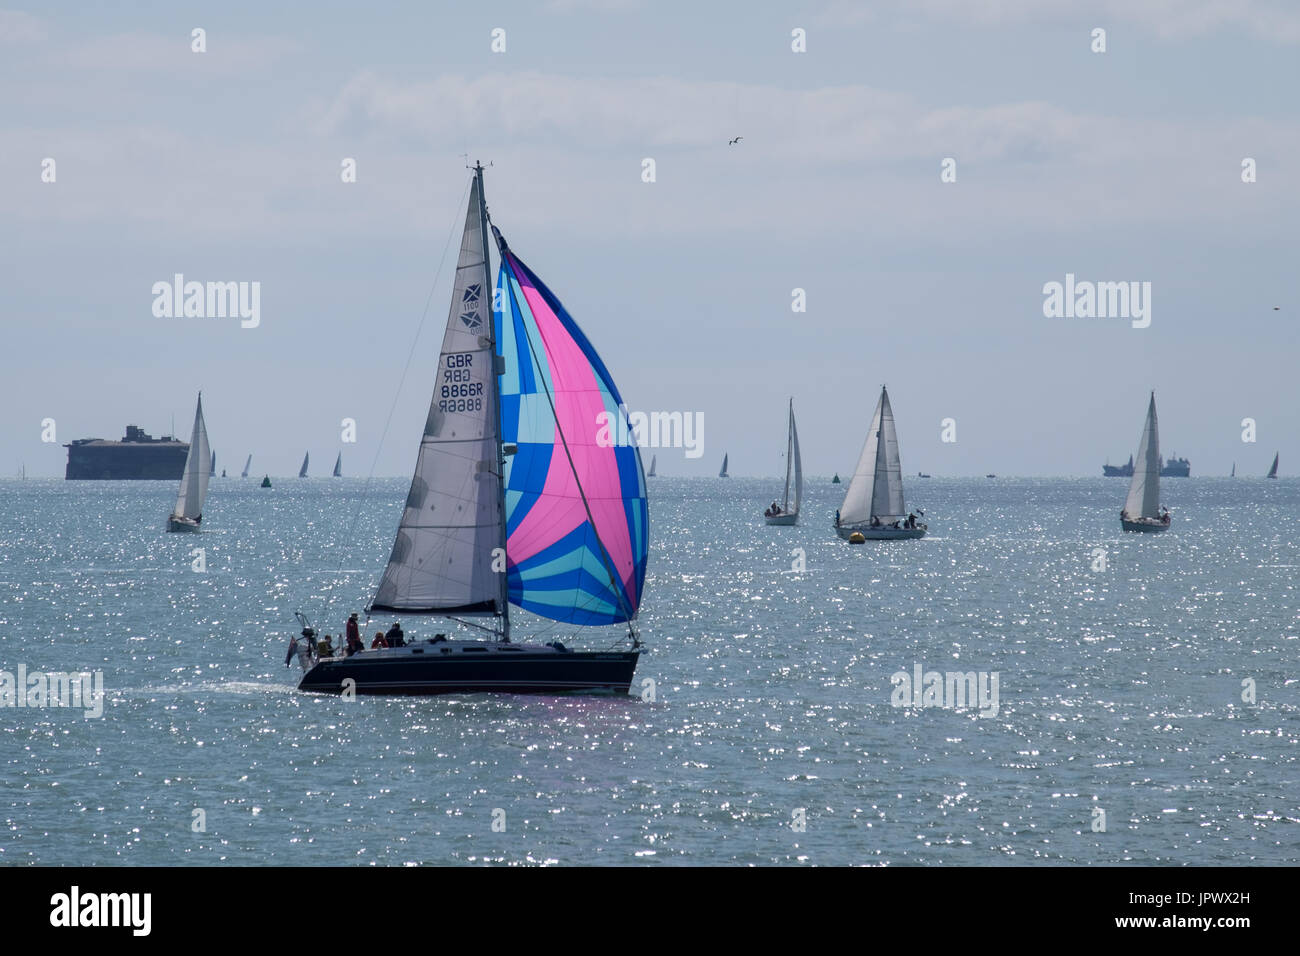 Spinnaker Sailing Stock Photos Amp Spinnaker Sailing Stock Images Alamy